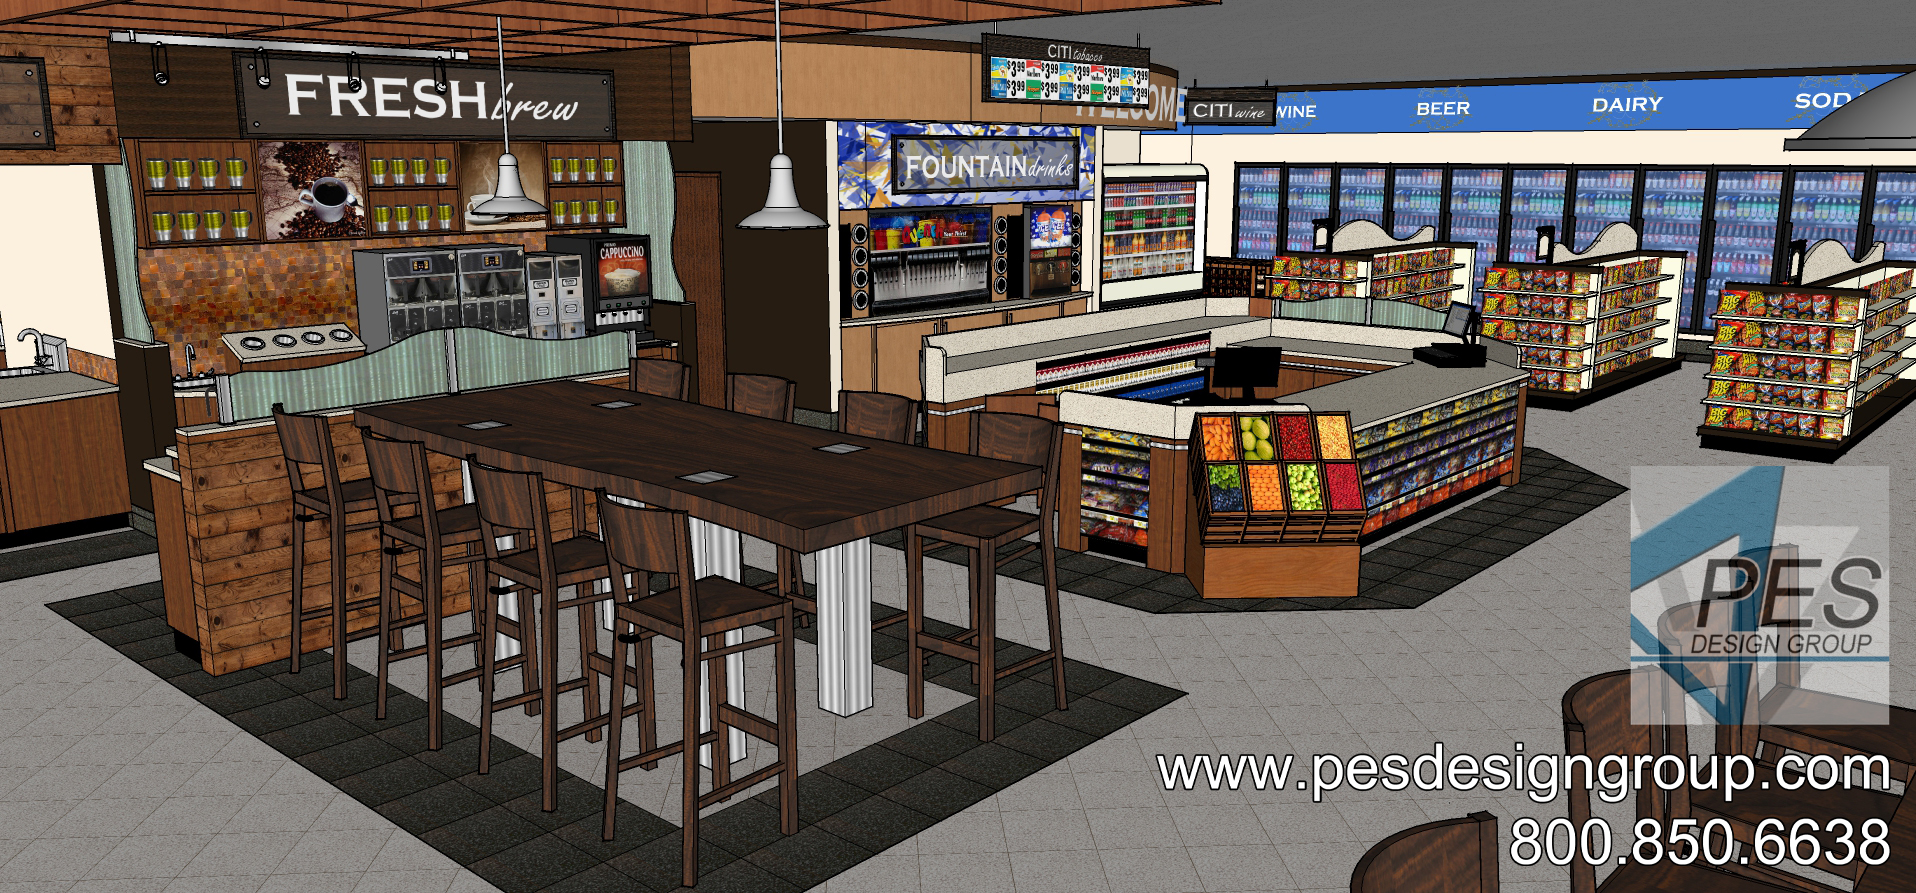 A concept rendering of the community table, cashier counter and fountain beverage area at a Shell gas station and c-store in Coconut Creek, Florida.